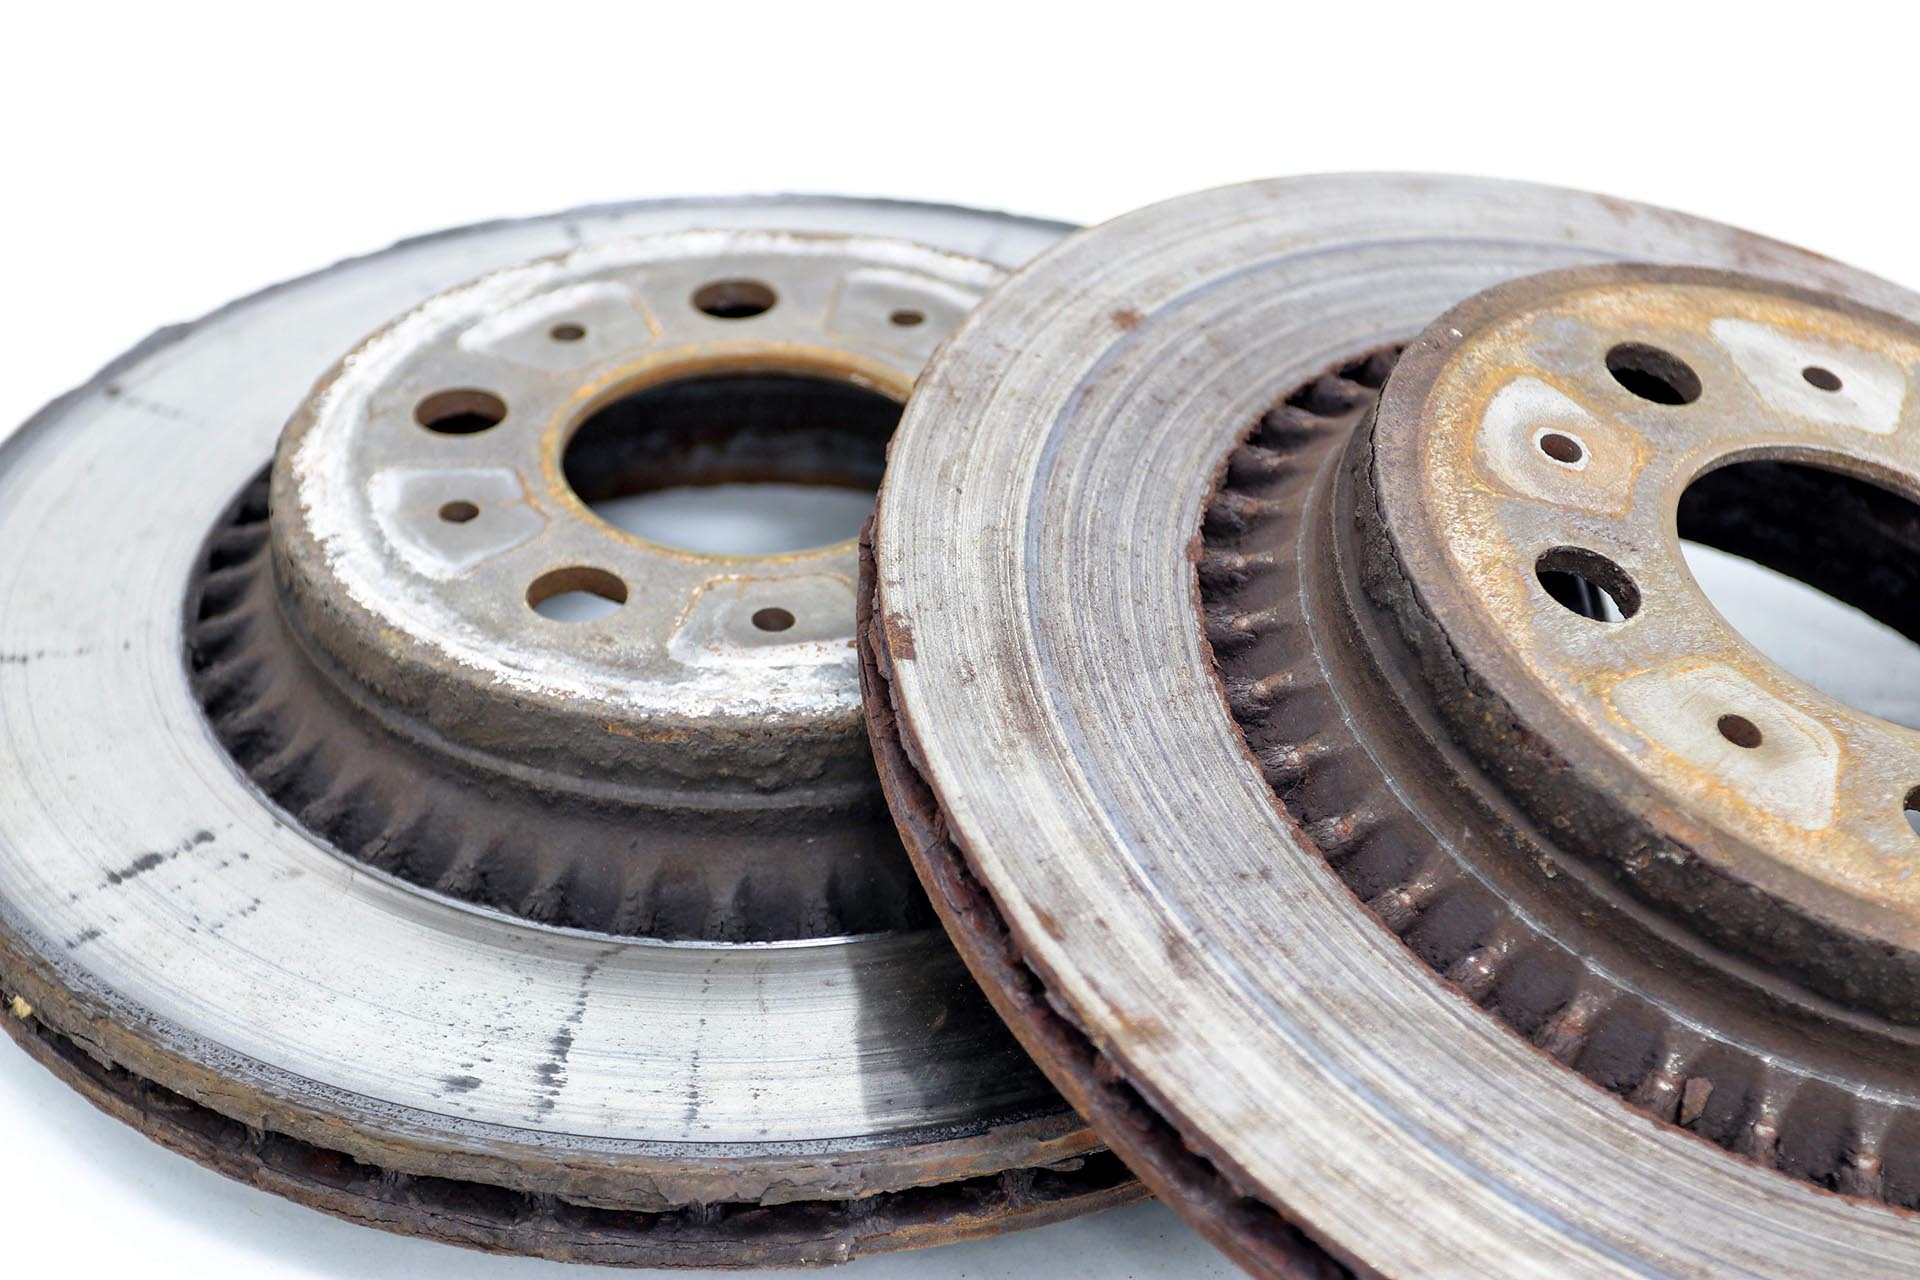 06_Worn brake discs with grooving